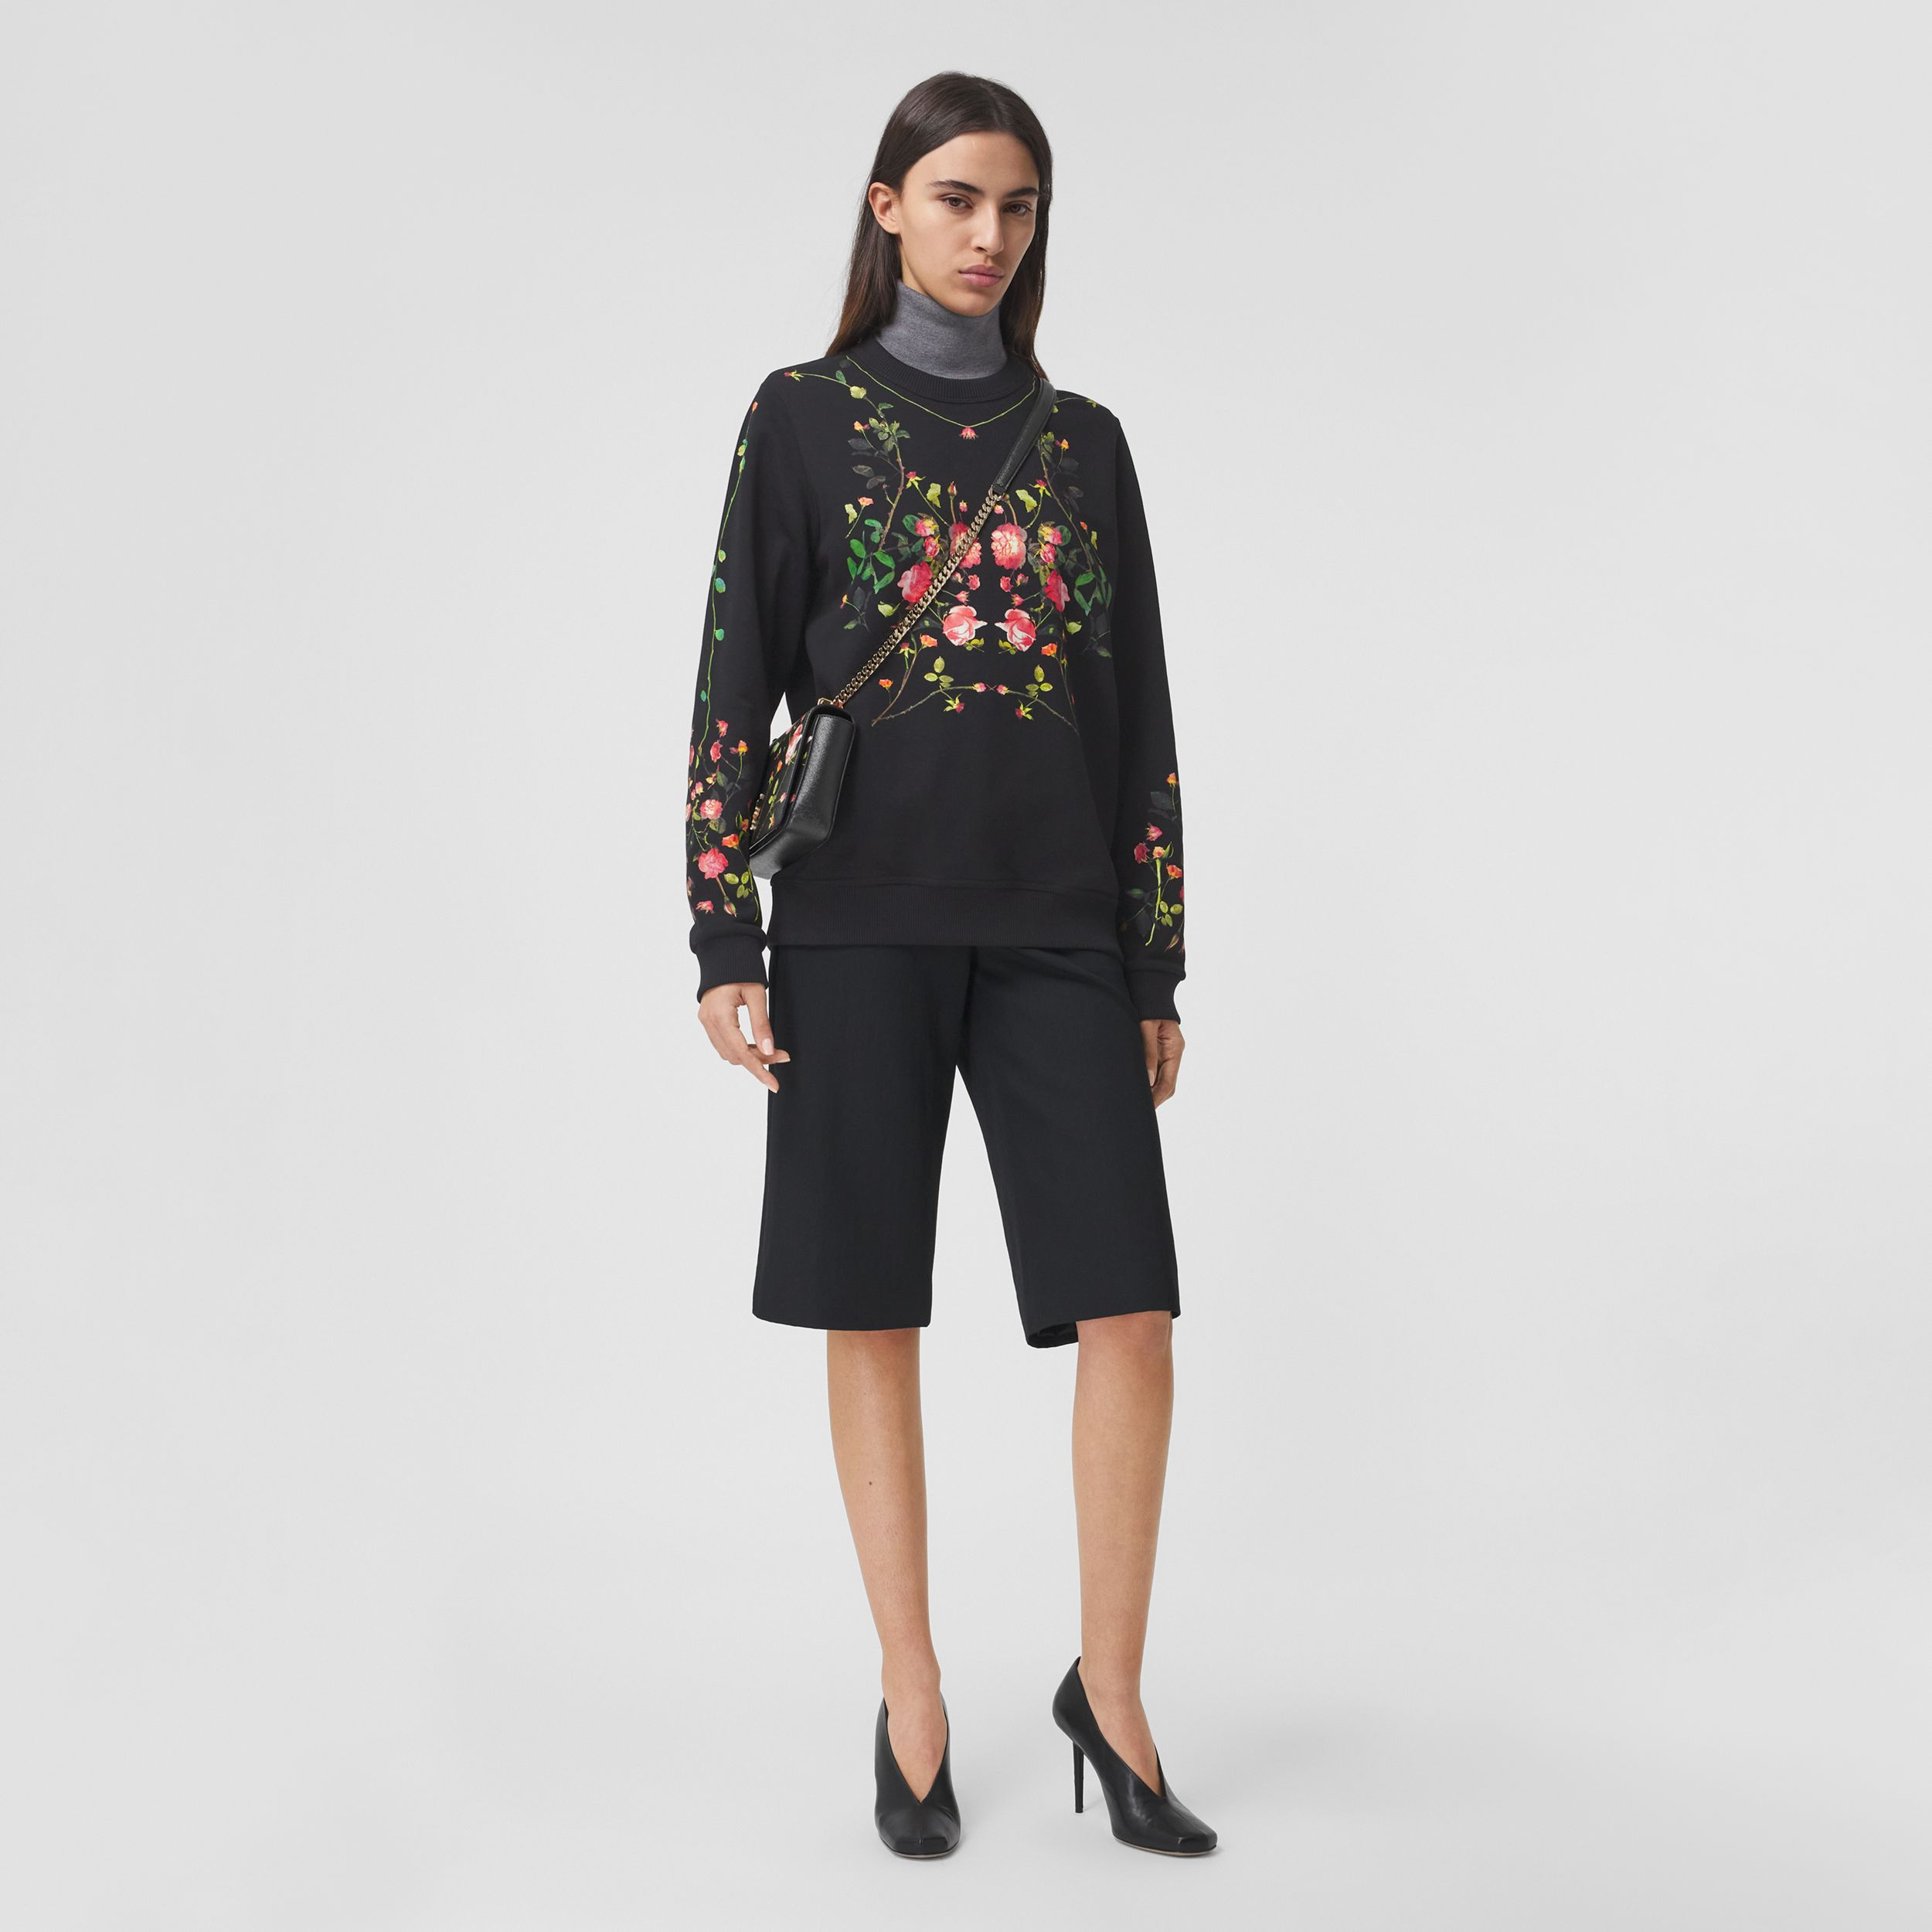 Rose Print Cotton Oversized Sweatshirt in Black - Women | Burberry Australia - 1